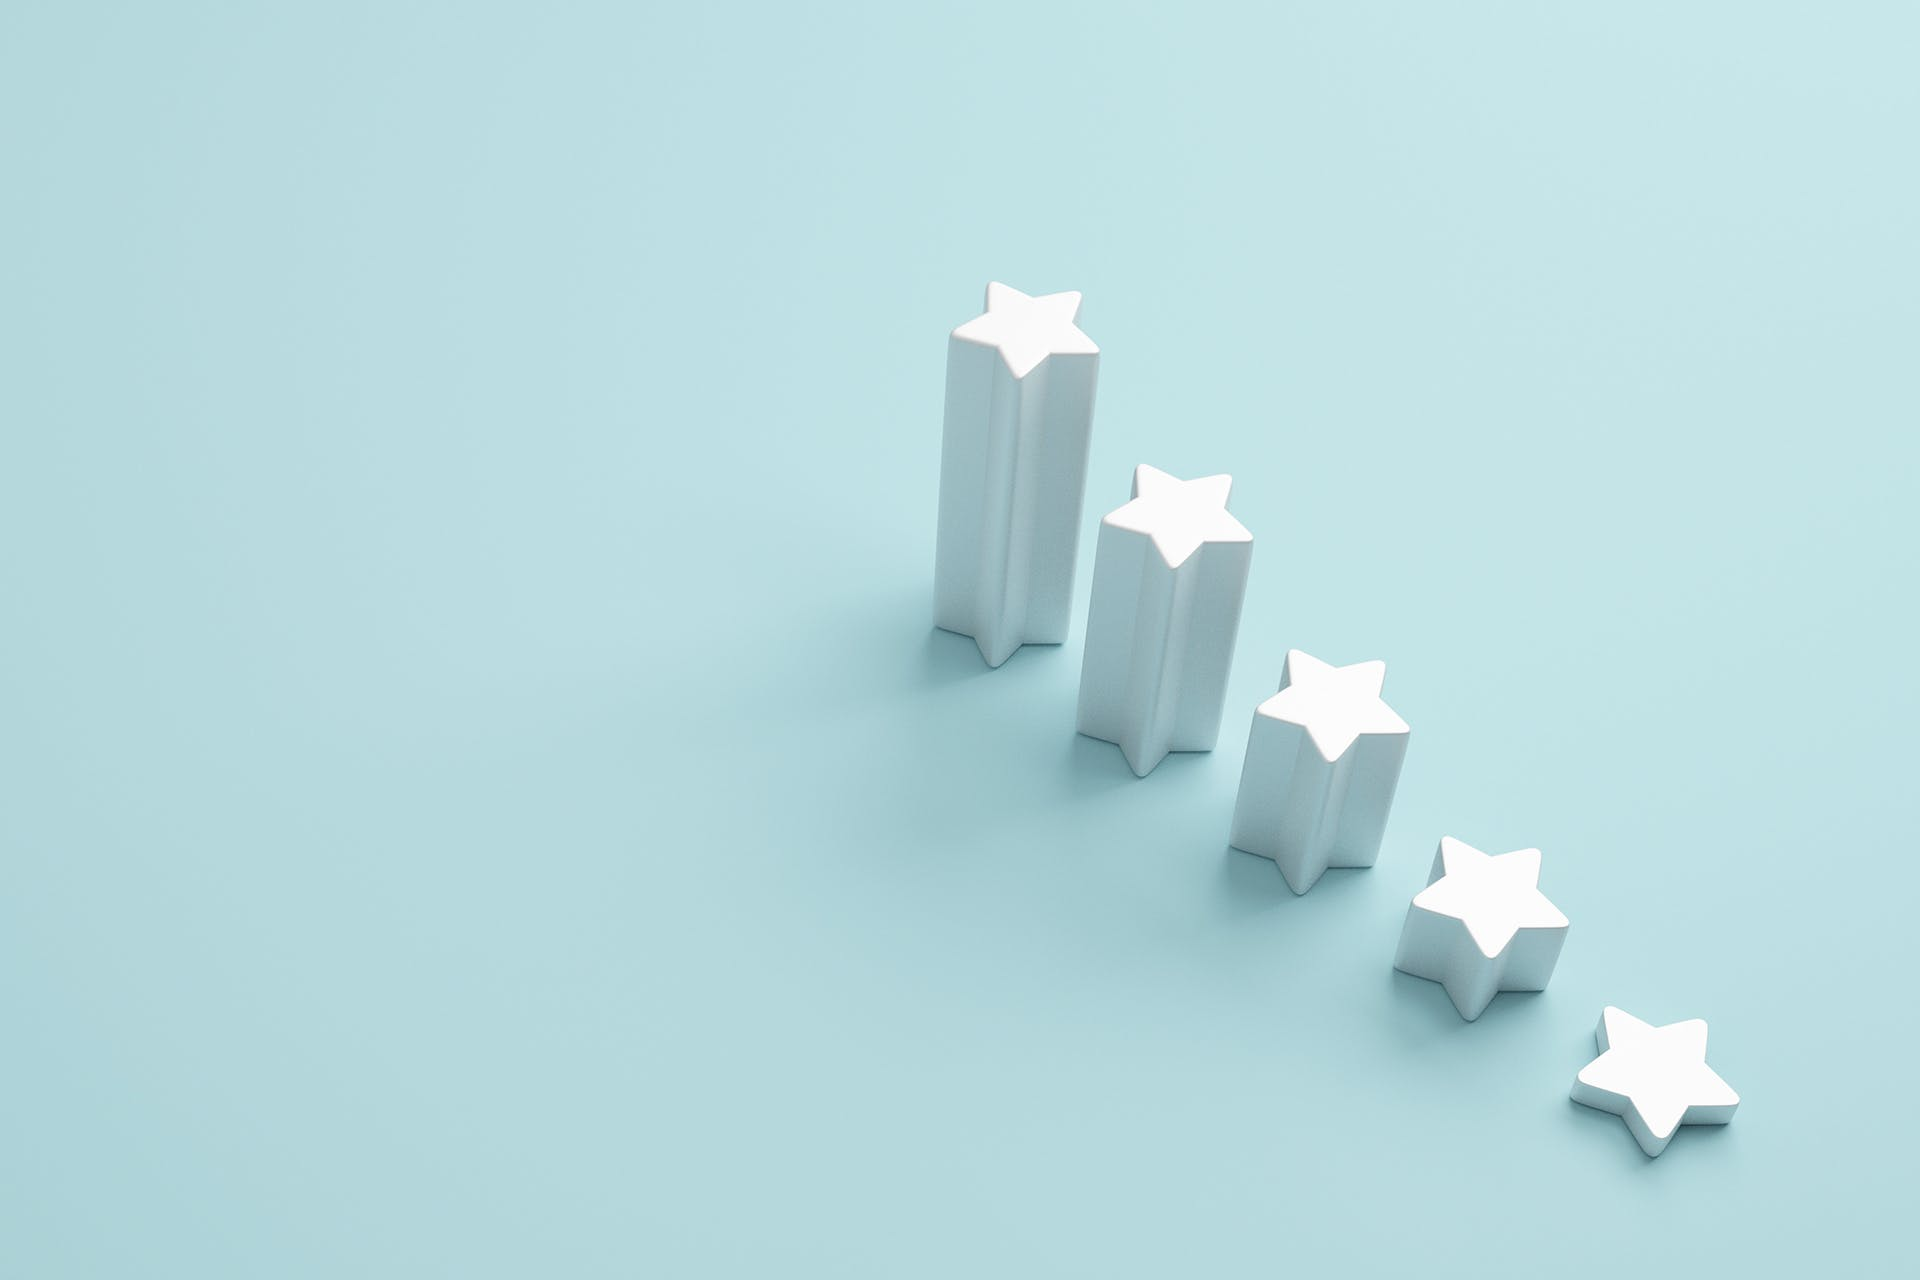 5 stars on a blue background for facebook recommendations and reviews